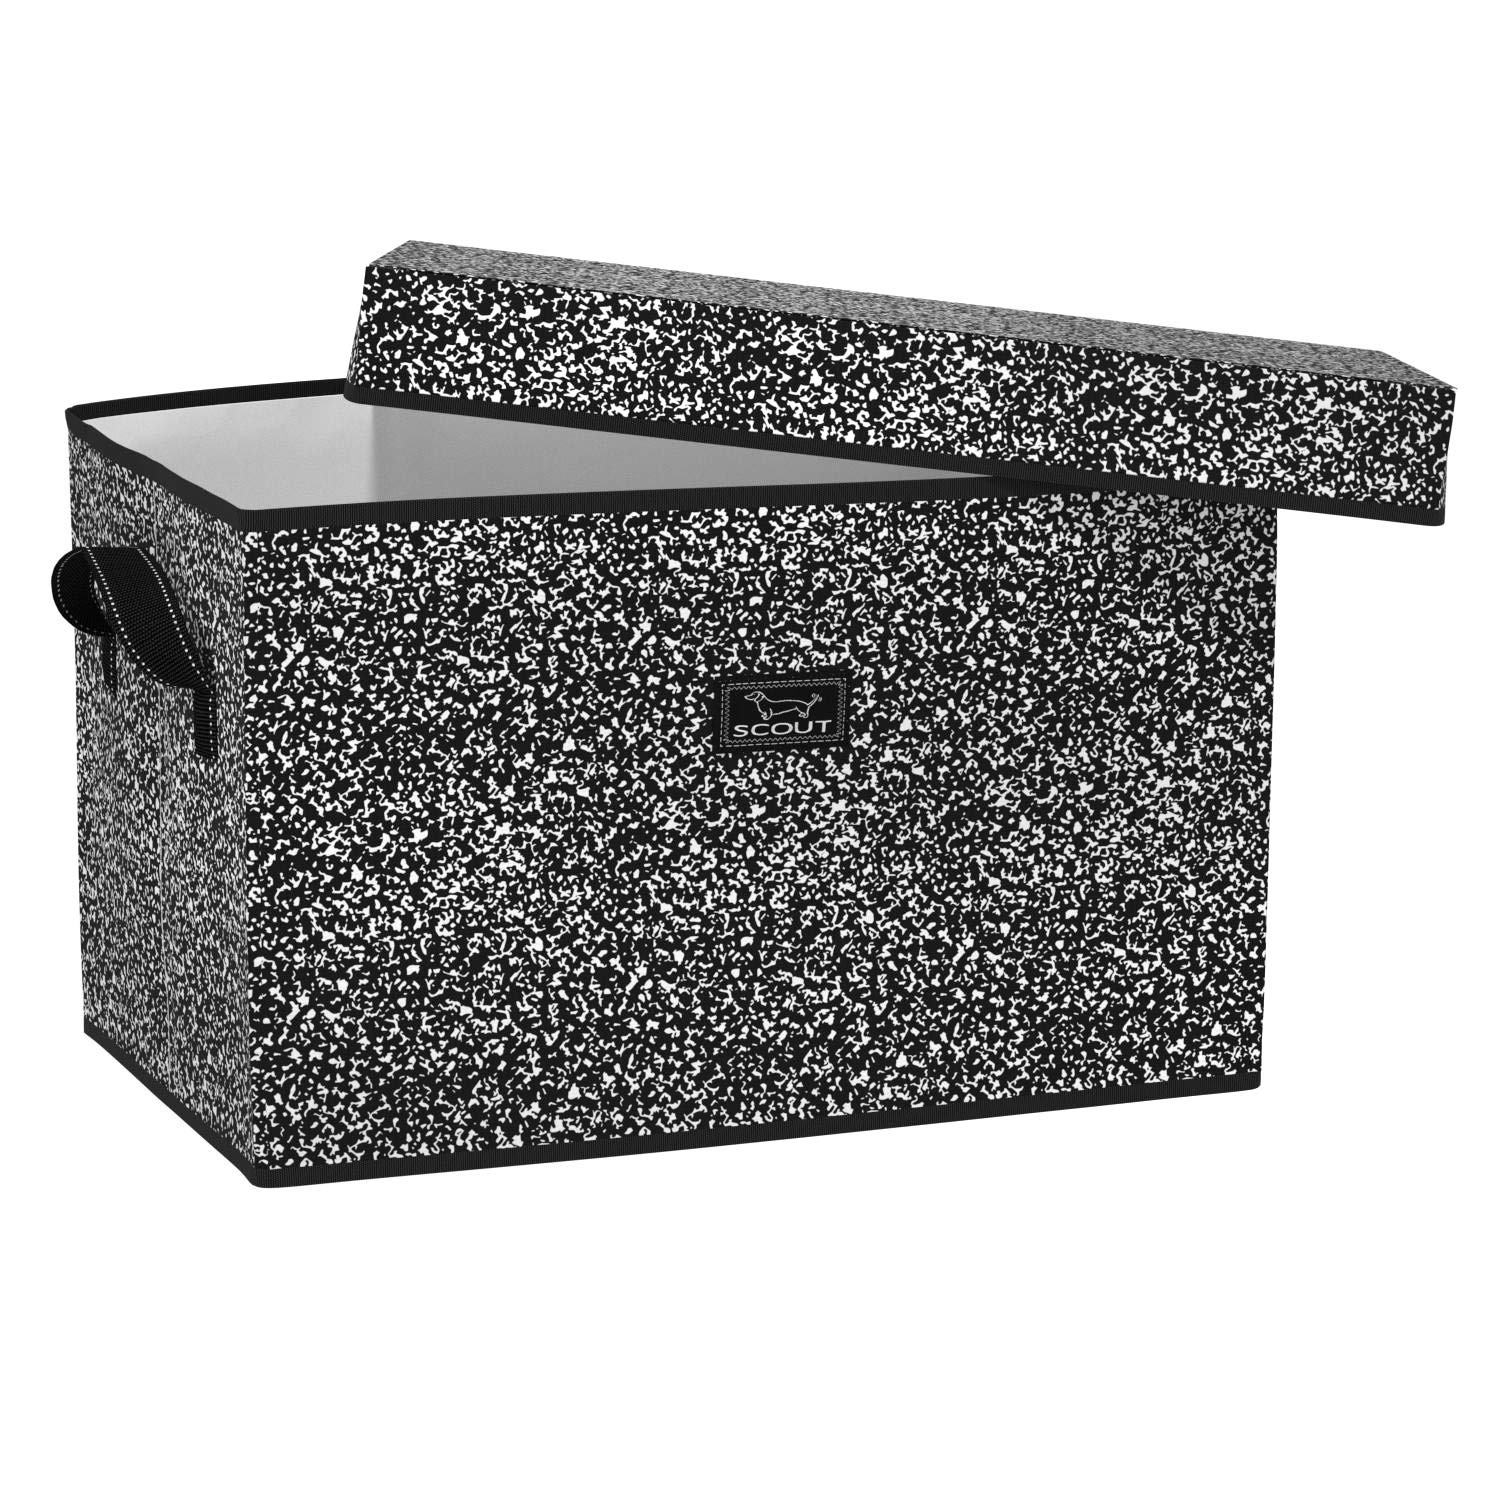 SCOUT Rump Roost Large Storage Bin, Collapsible and Stackable Storage Bin Organizer with Lid (Multiple Patterns Available) by SCOUT